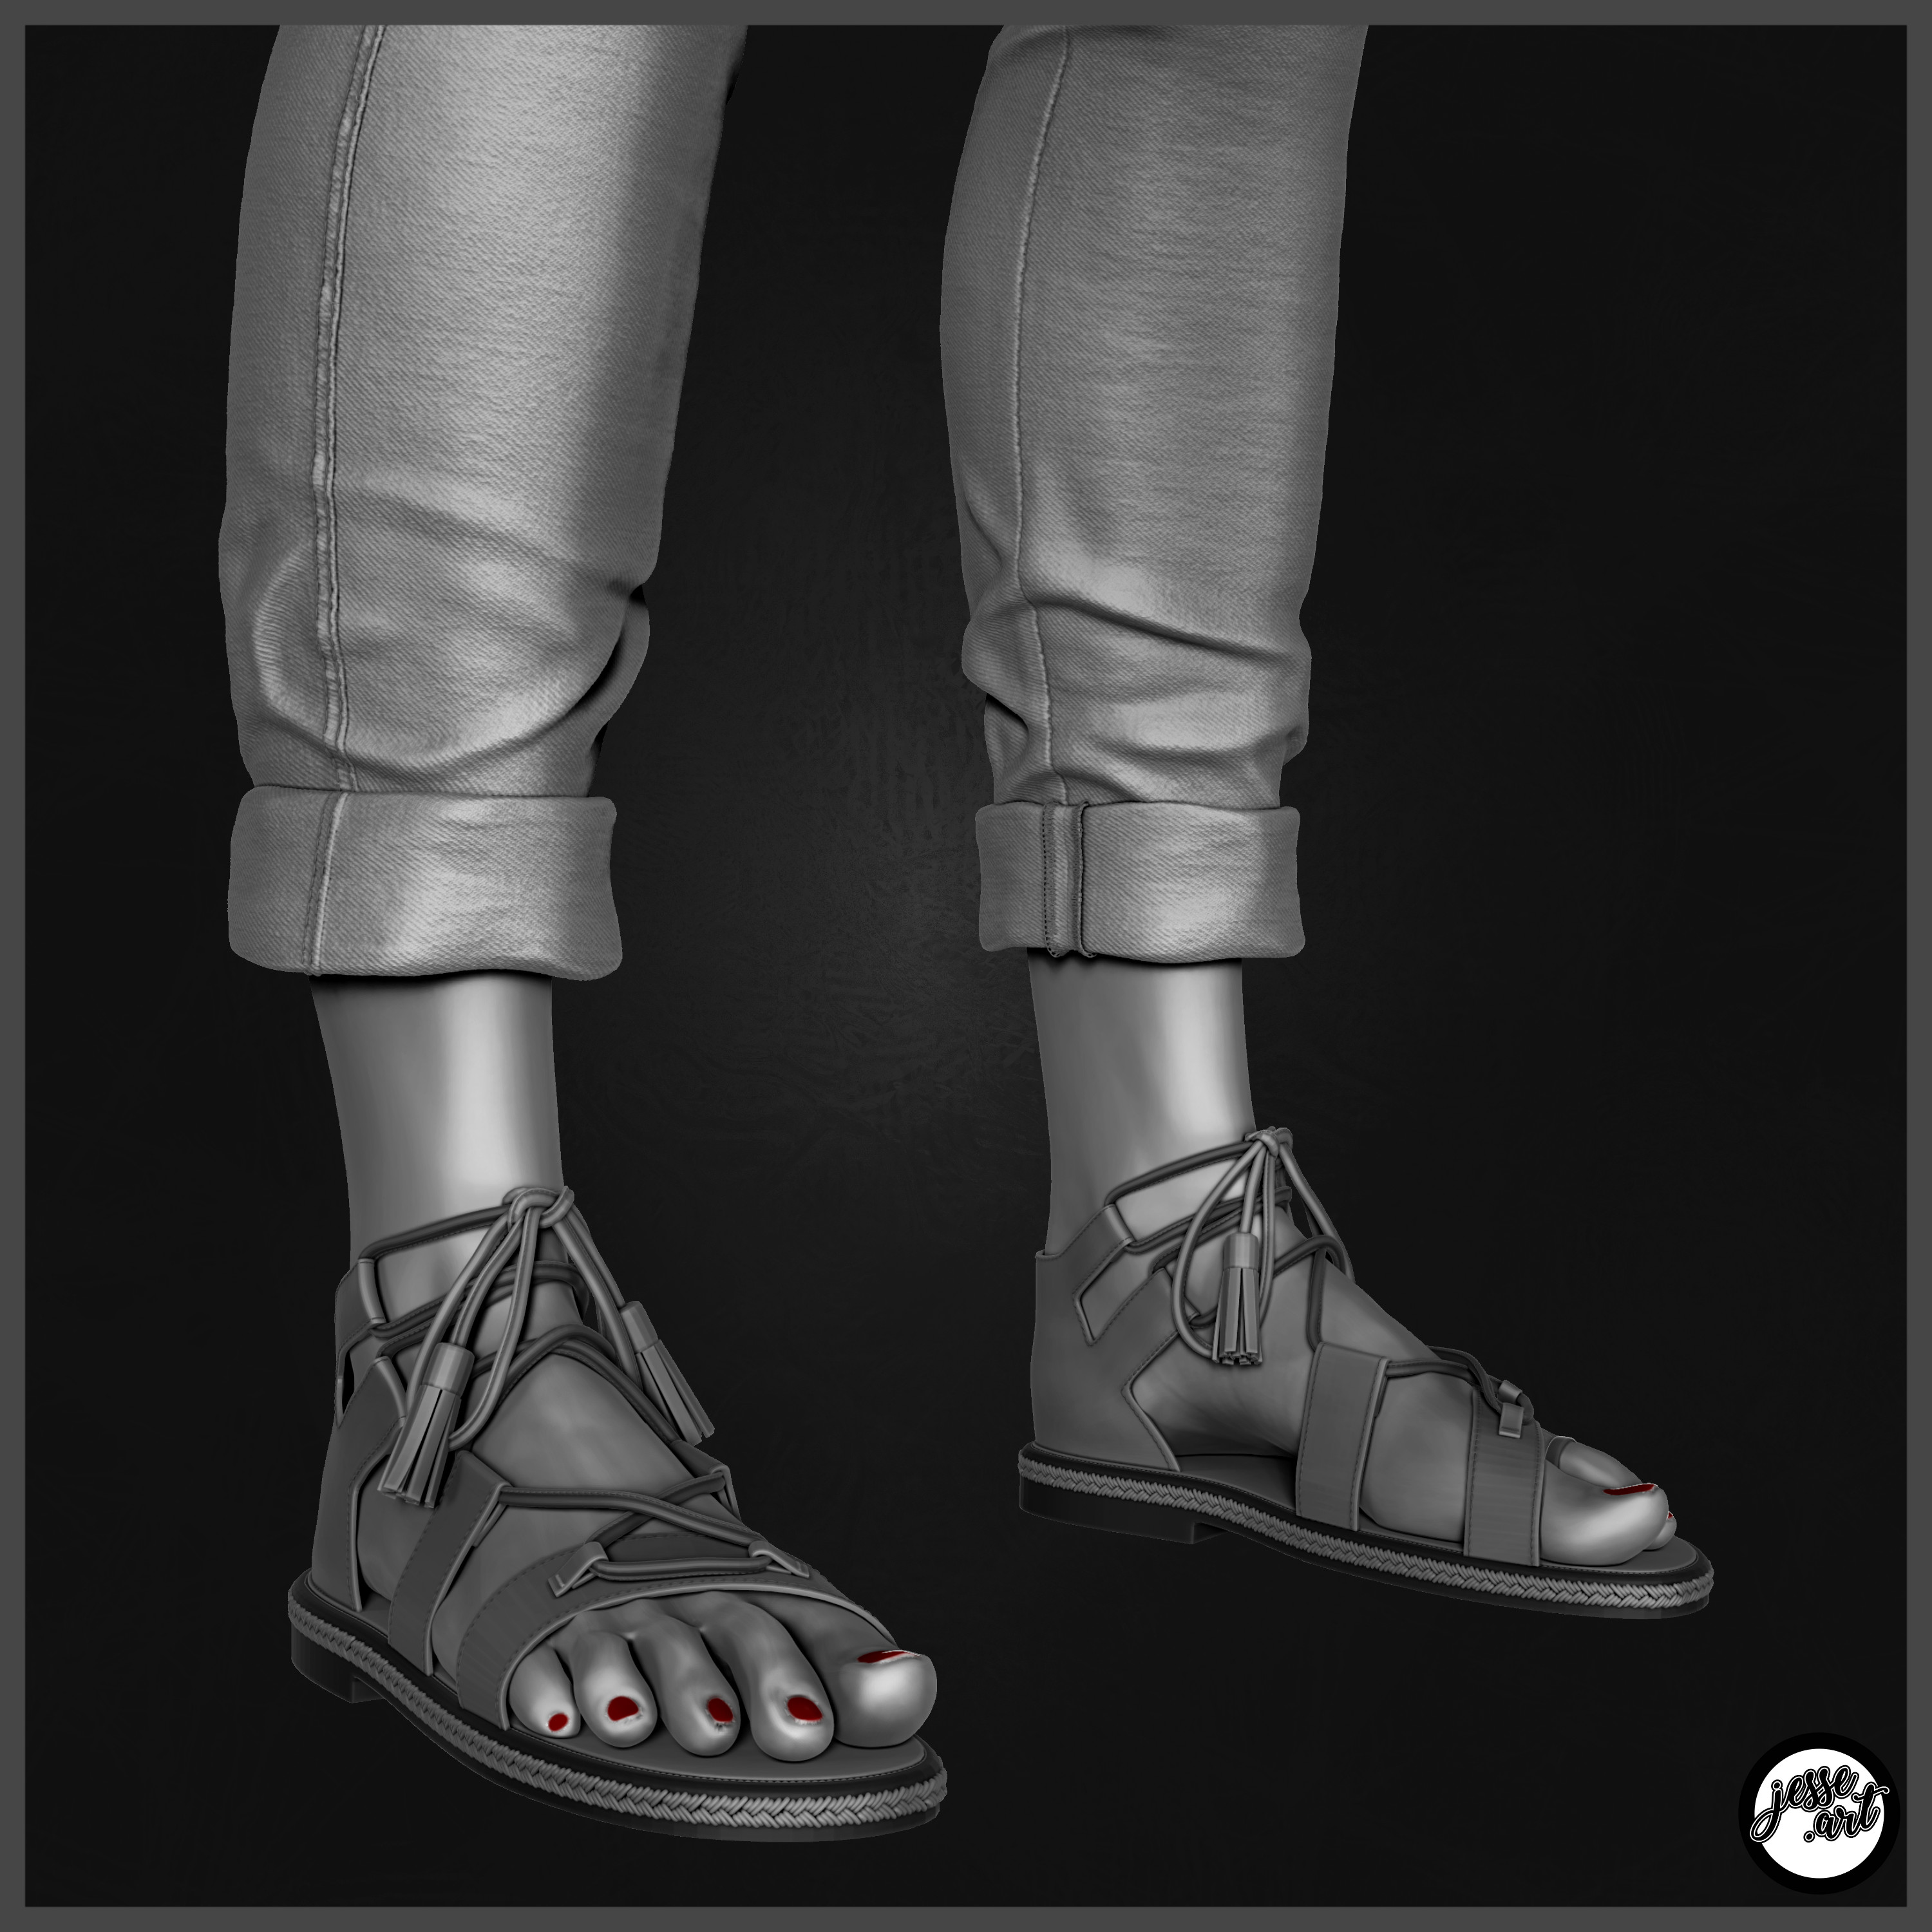 Modeled her sandals as well and took time to focus on details of the stitching.